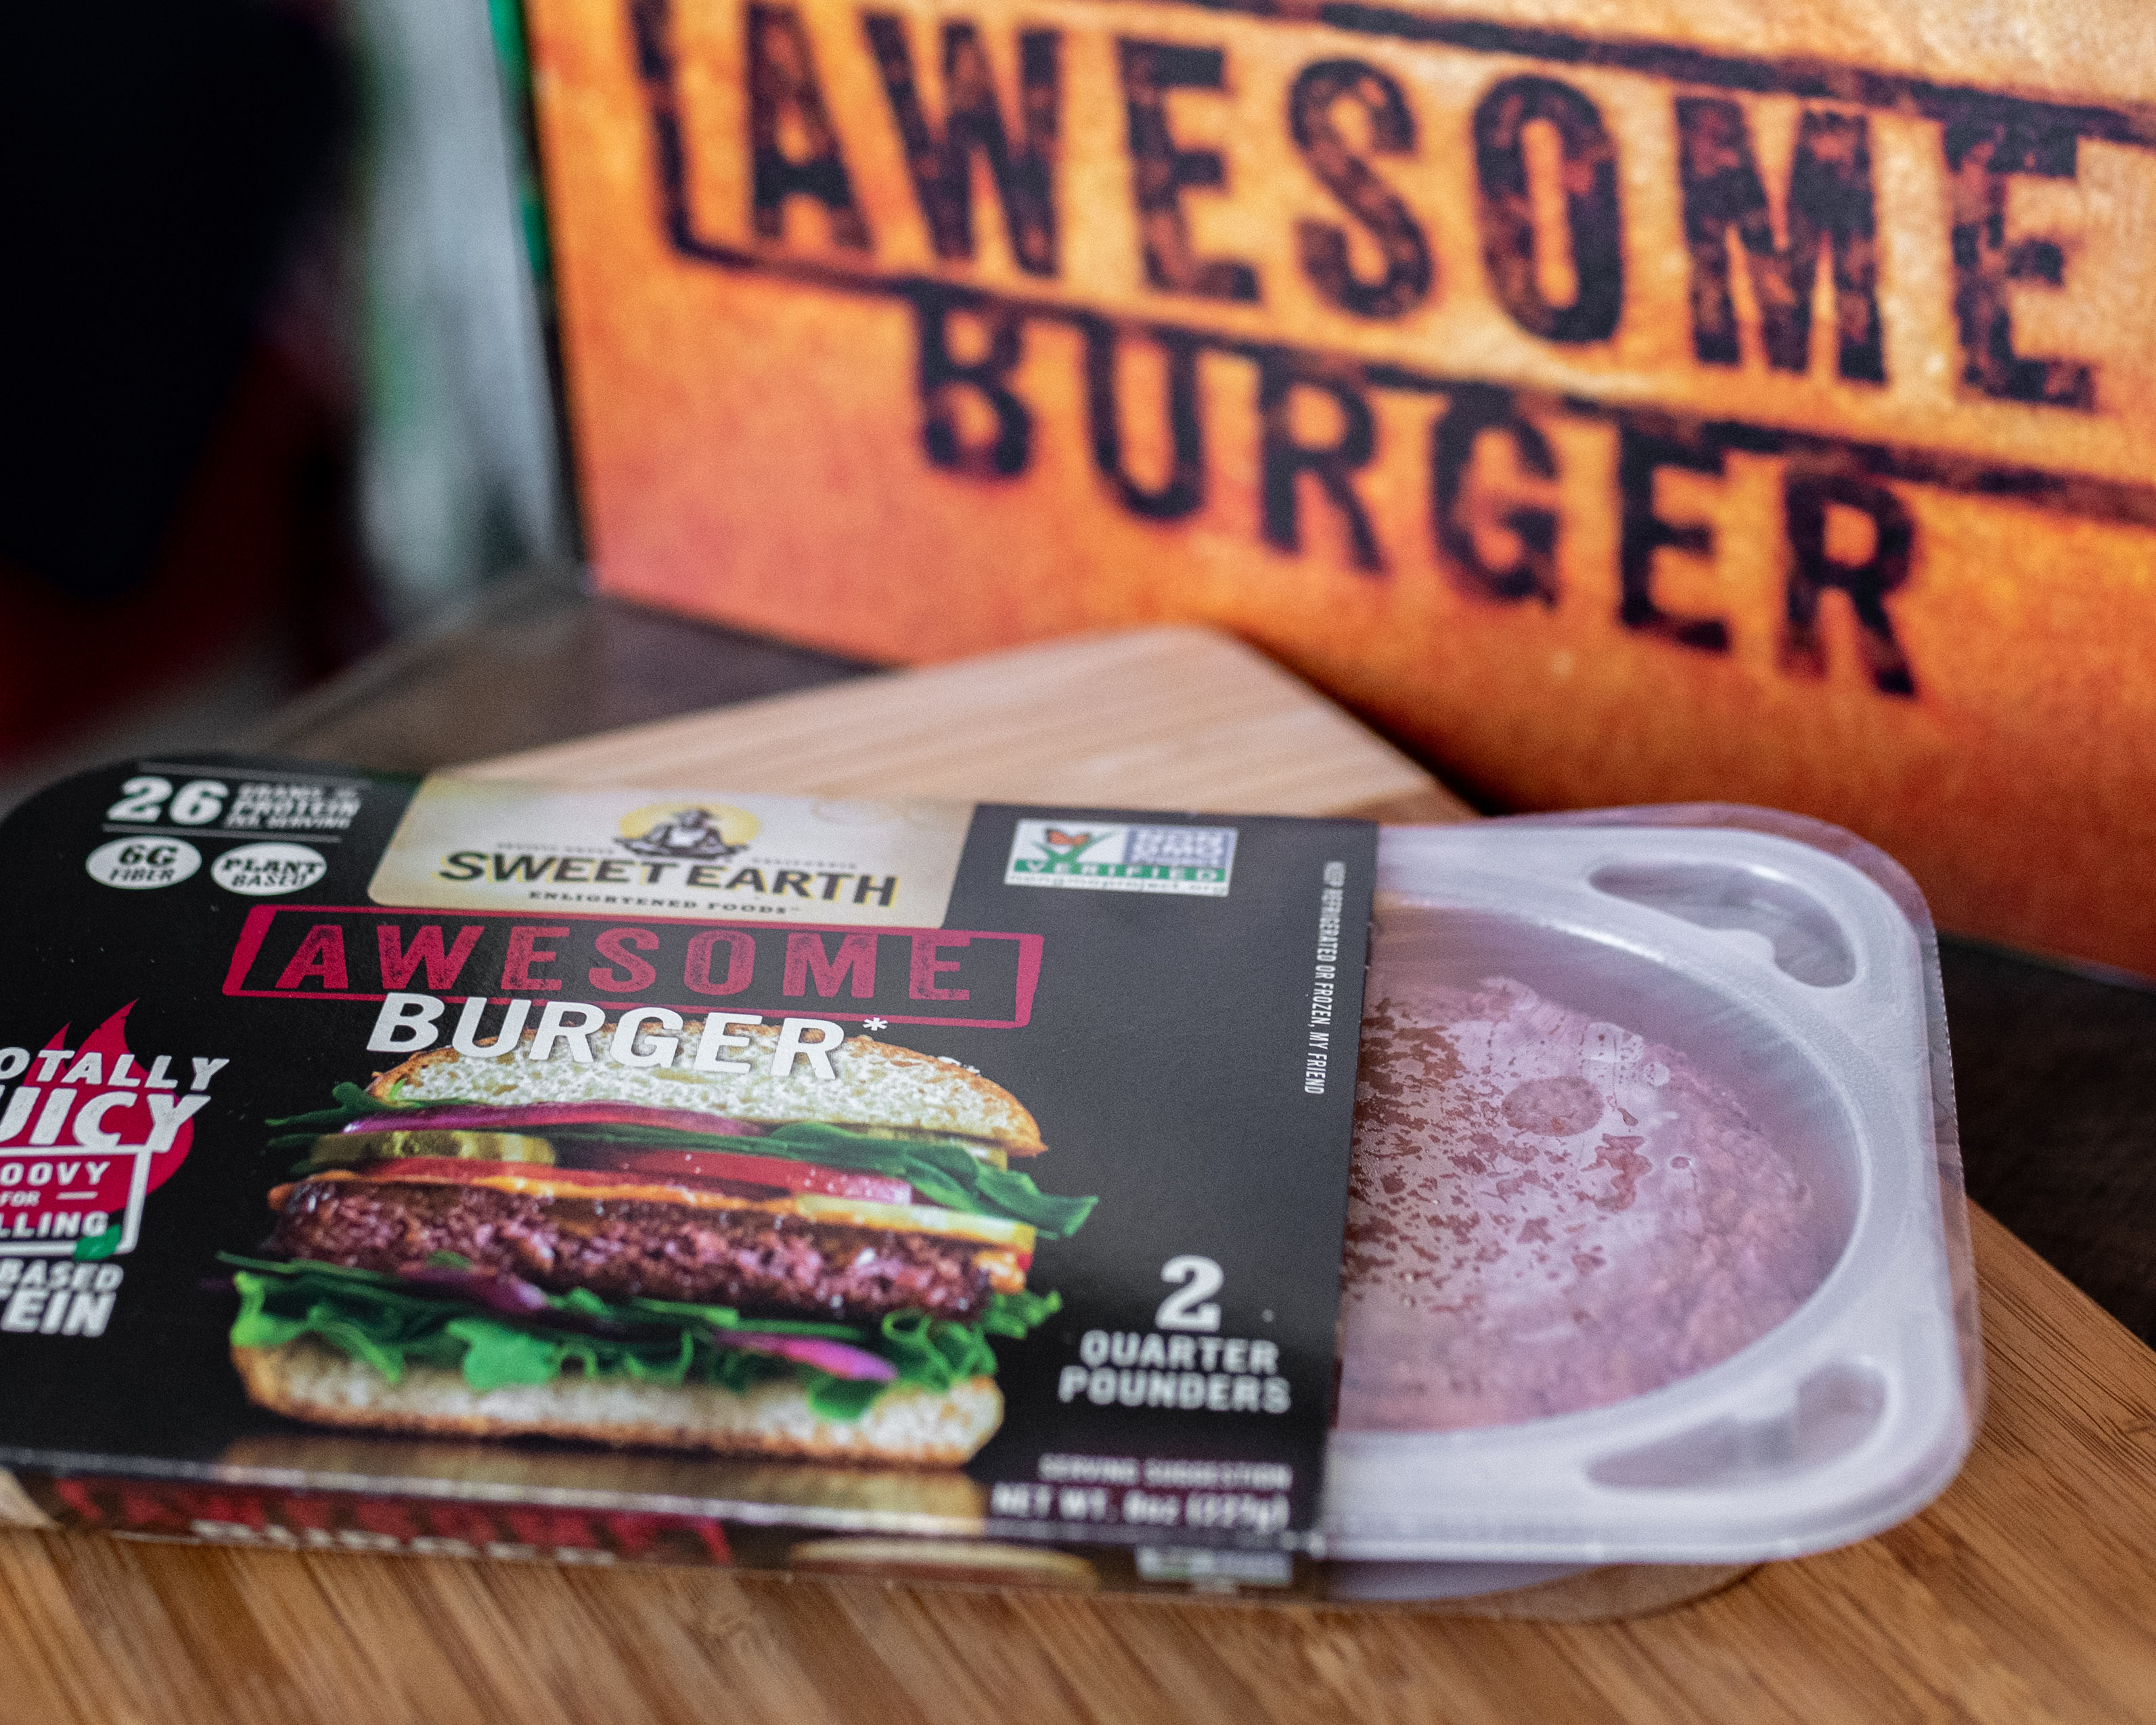 Sweet Earth Awesome Burger packaging